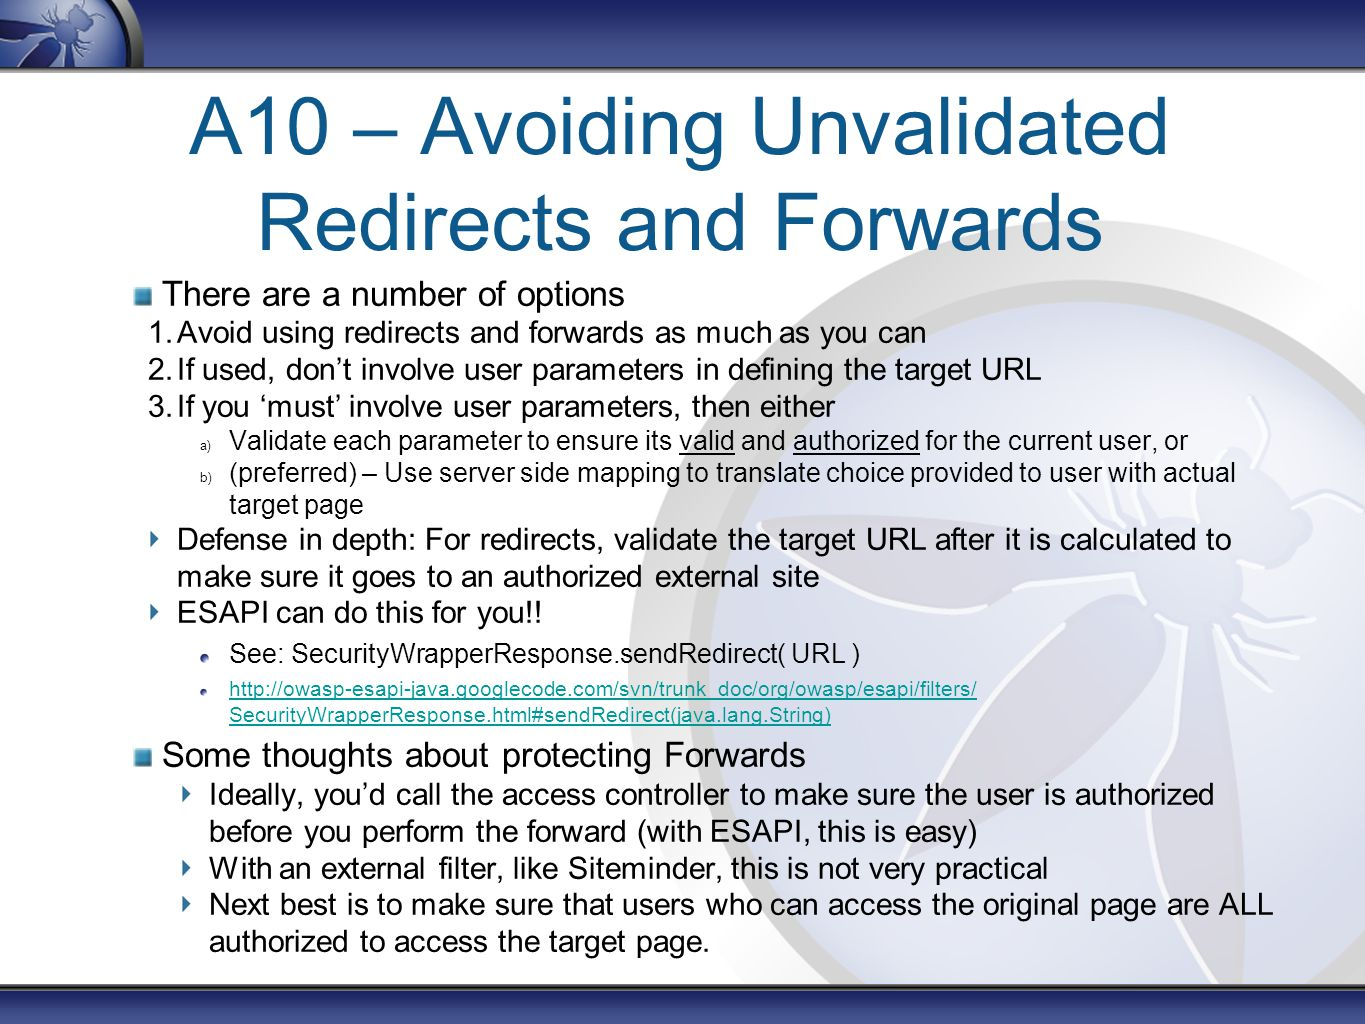 A10 – Avoiding Unvalidated Redirects and Forwards There are a number of options 1.Avoid using redirects and forwards as much as you can 2.If used, don't involve user parameters in defining the target URL 3.If you 'must' involve user parameters, then either a) Validate each parameter to ensure its valid and authorized for the current user, or b) (preferred) – Use server side mapping to translate choice provided to user with actual target page Defense in depth: For redirects, validate the target URL after it is calculated to make sure it goes to an authorized external site ESAPI can do this for you!.